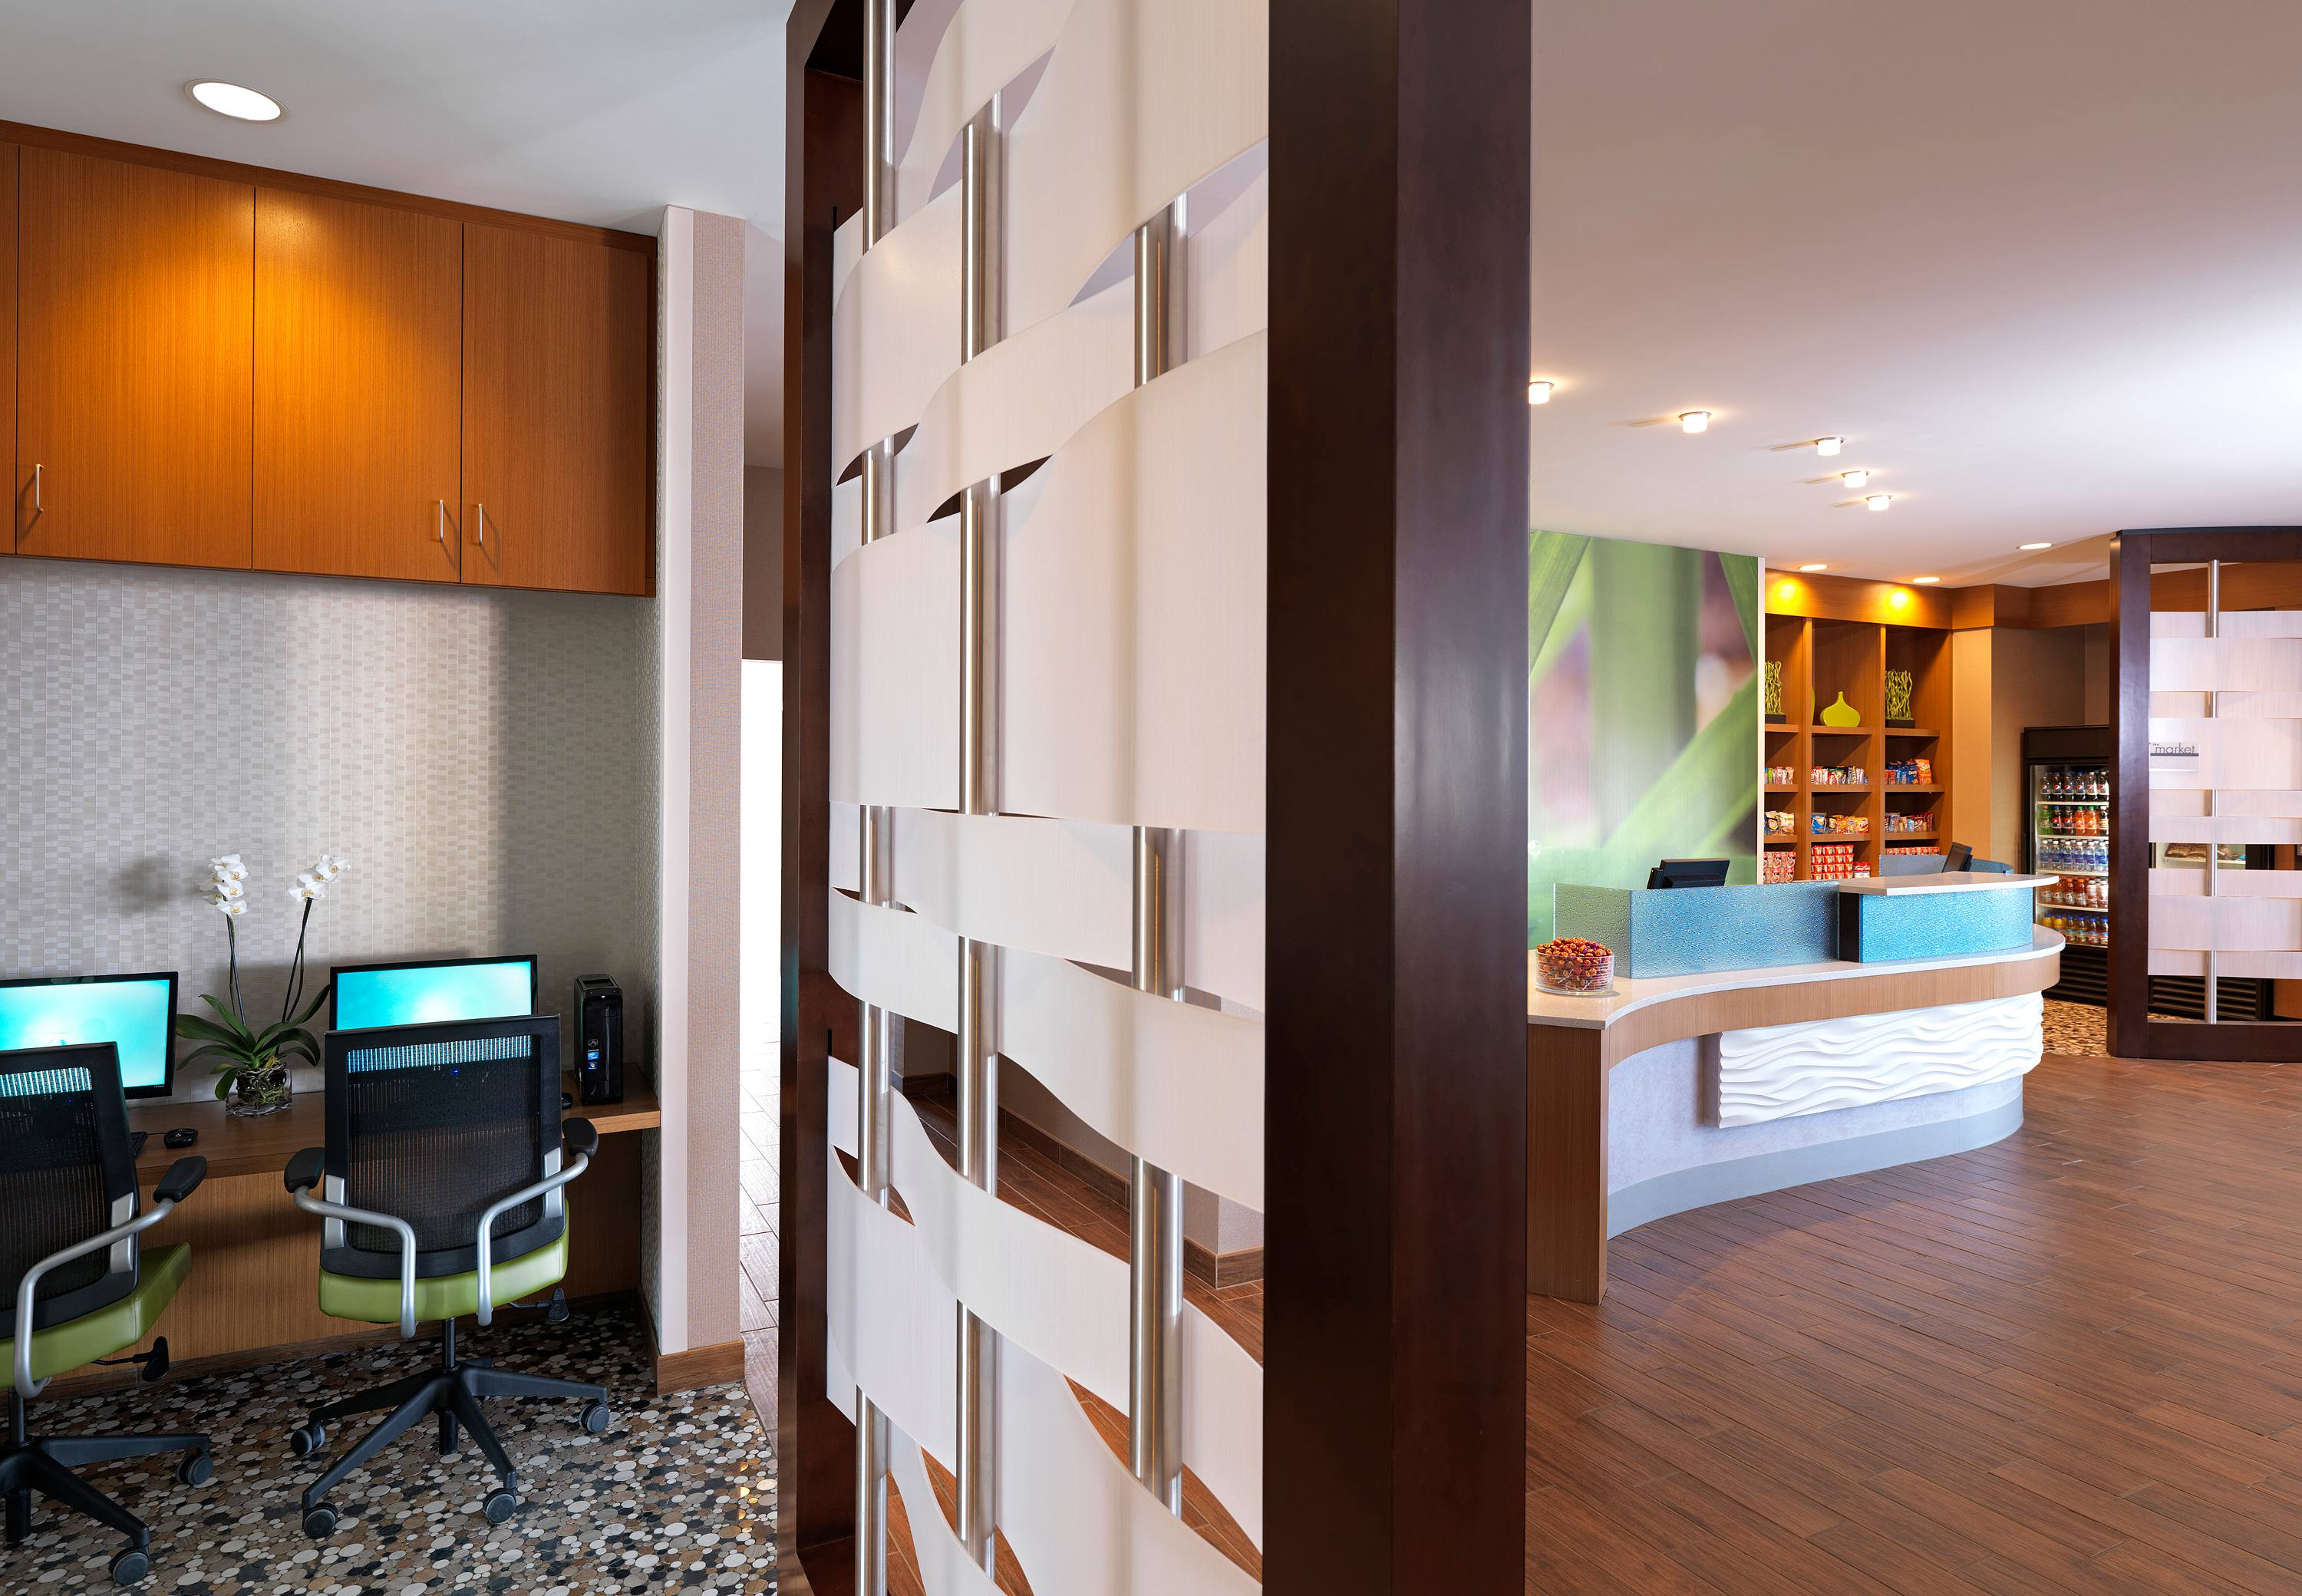 SpringHill Suites by Marriott Denver Tech Center image 8